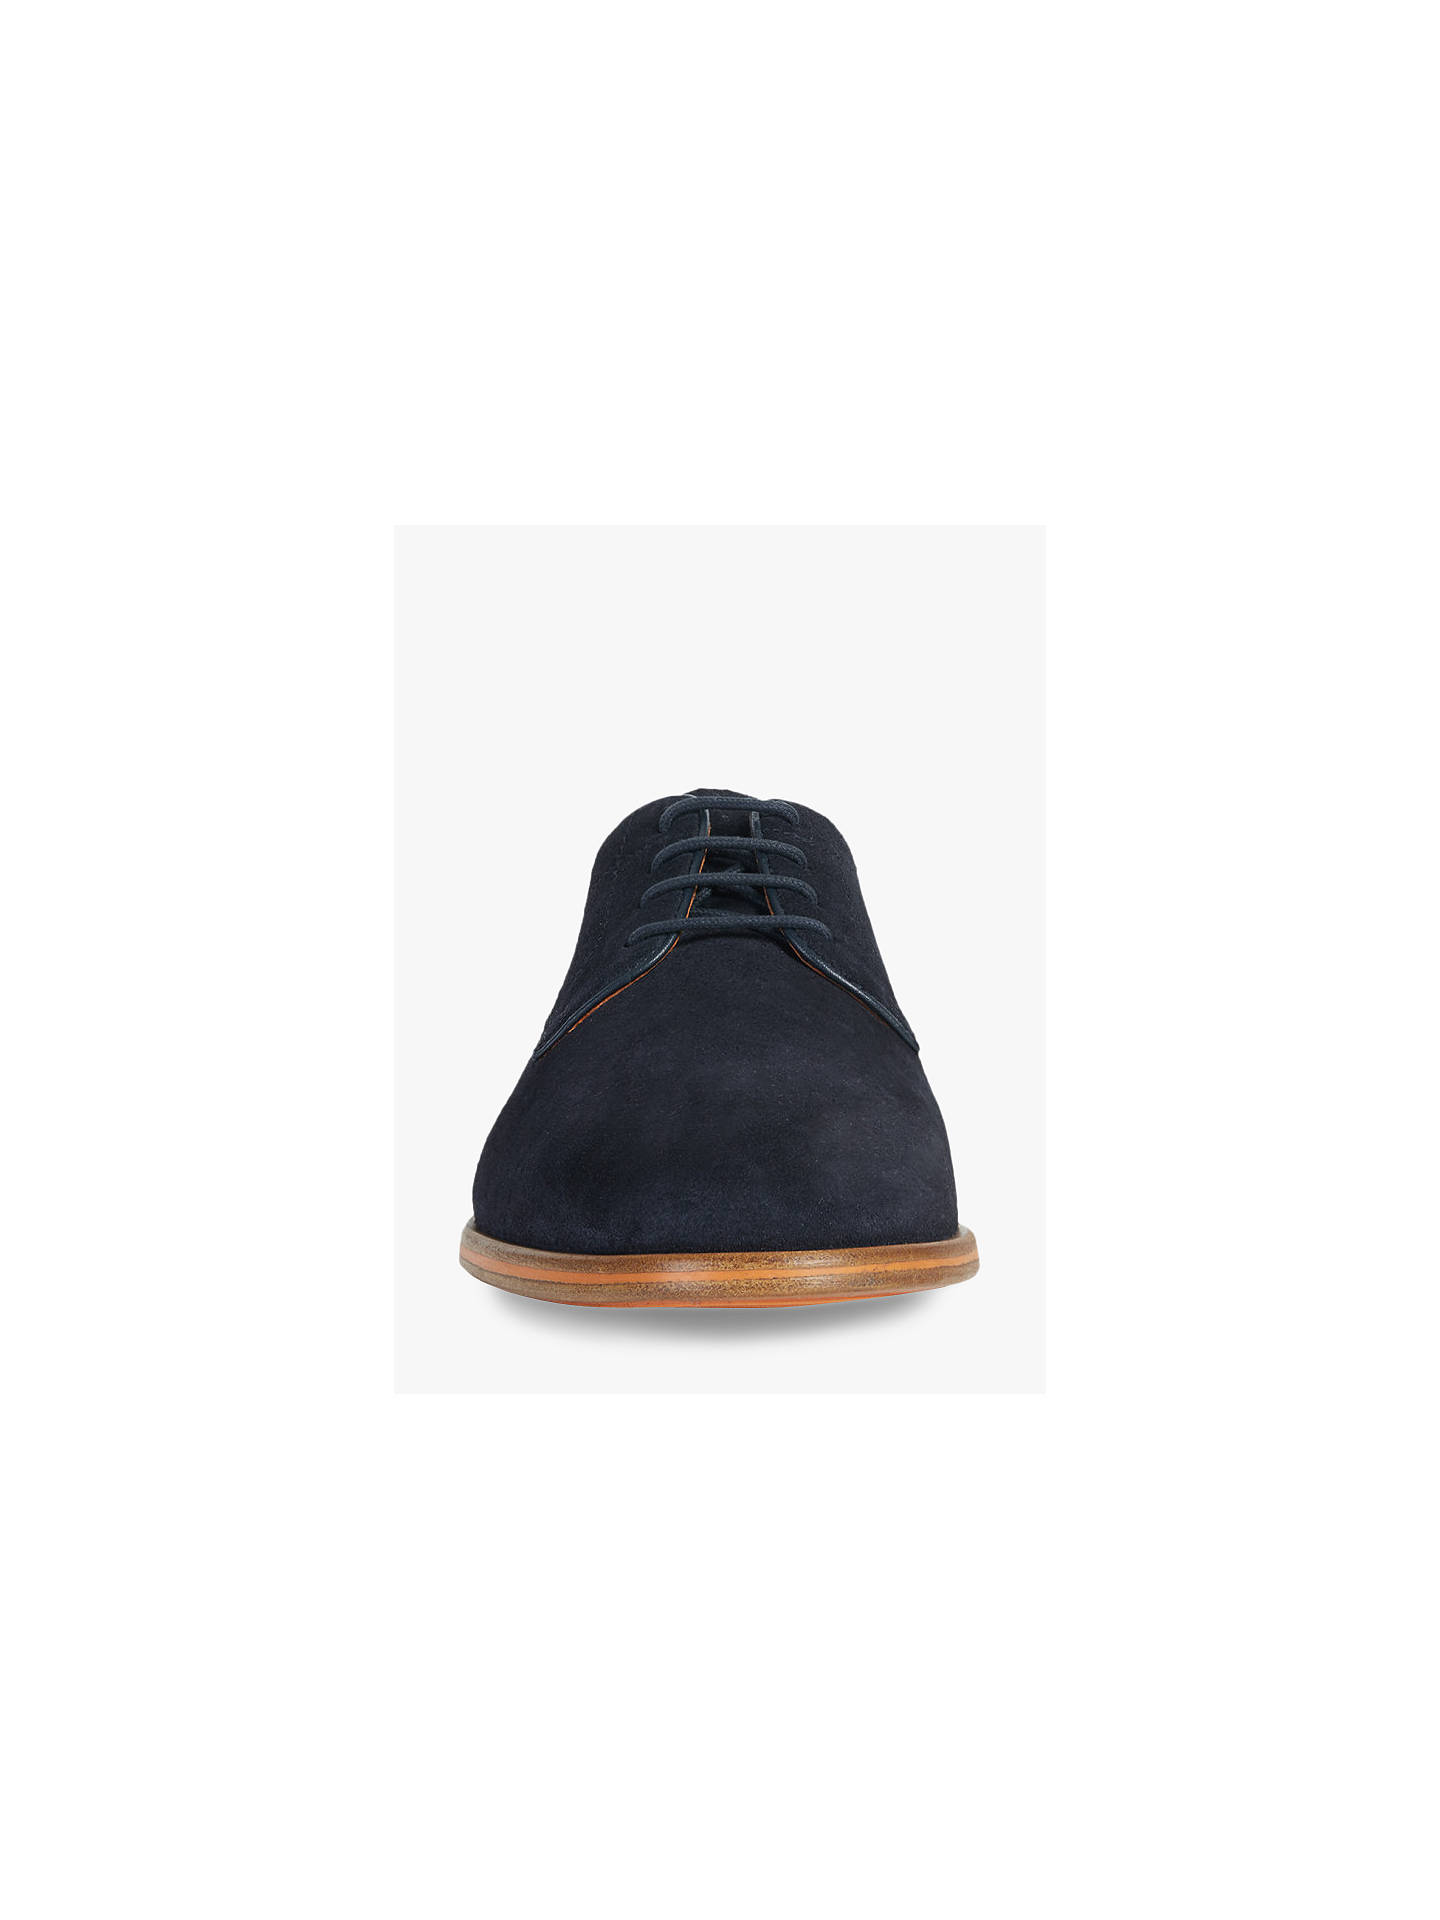 69f91b32d1 ... Buy Geox Bayle Suede Derby Shoes, Navy, 10 Online at johnlewis.com ...